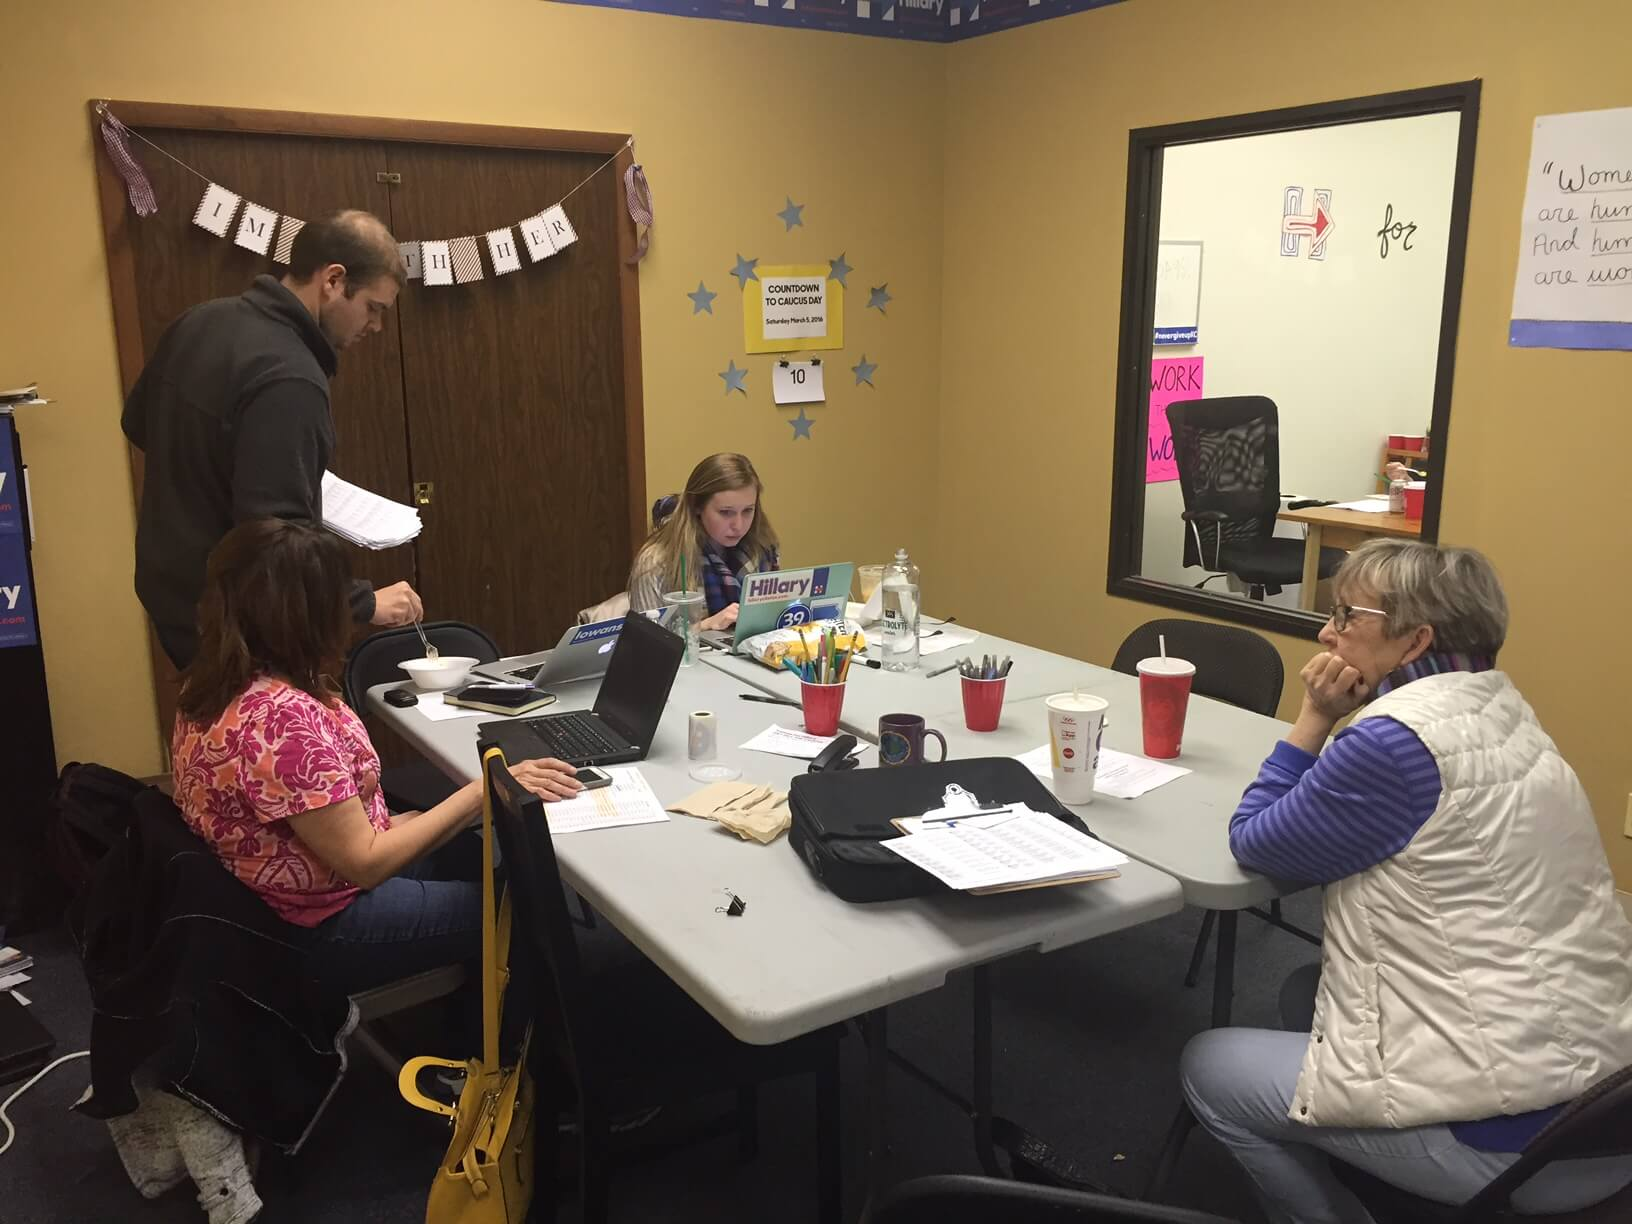 Clinton staffers and volunteers in the Overland Park office